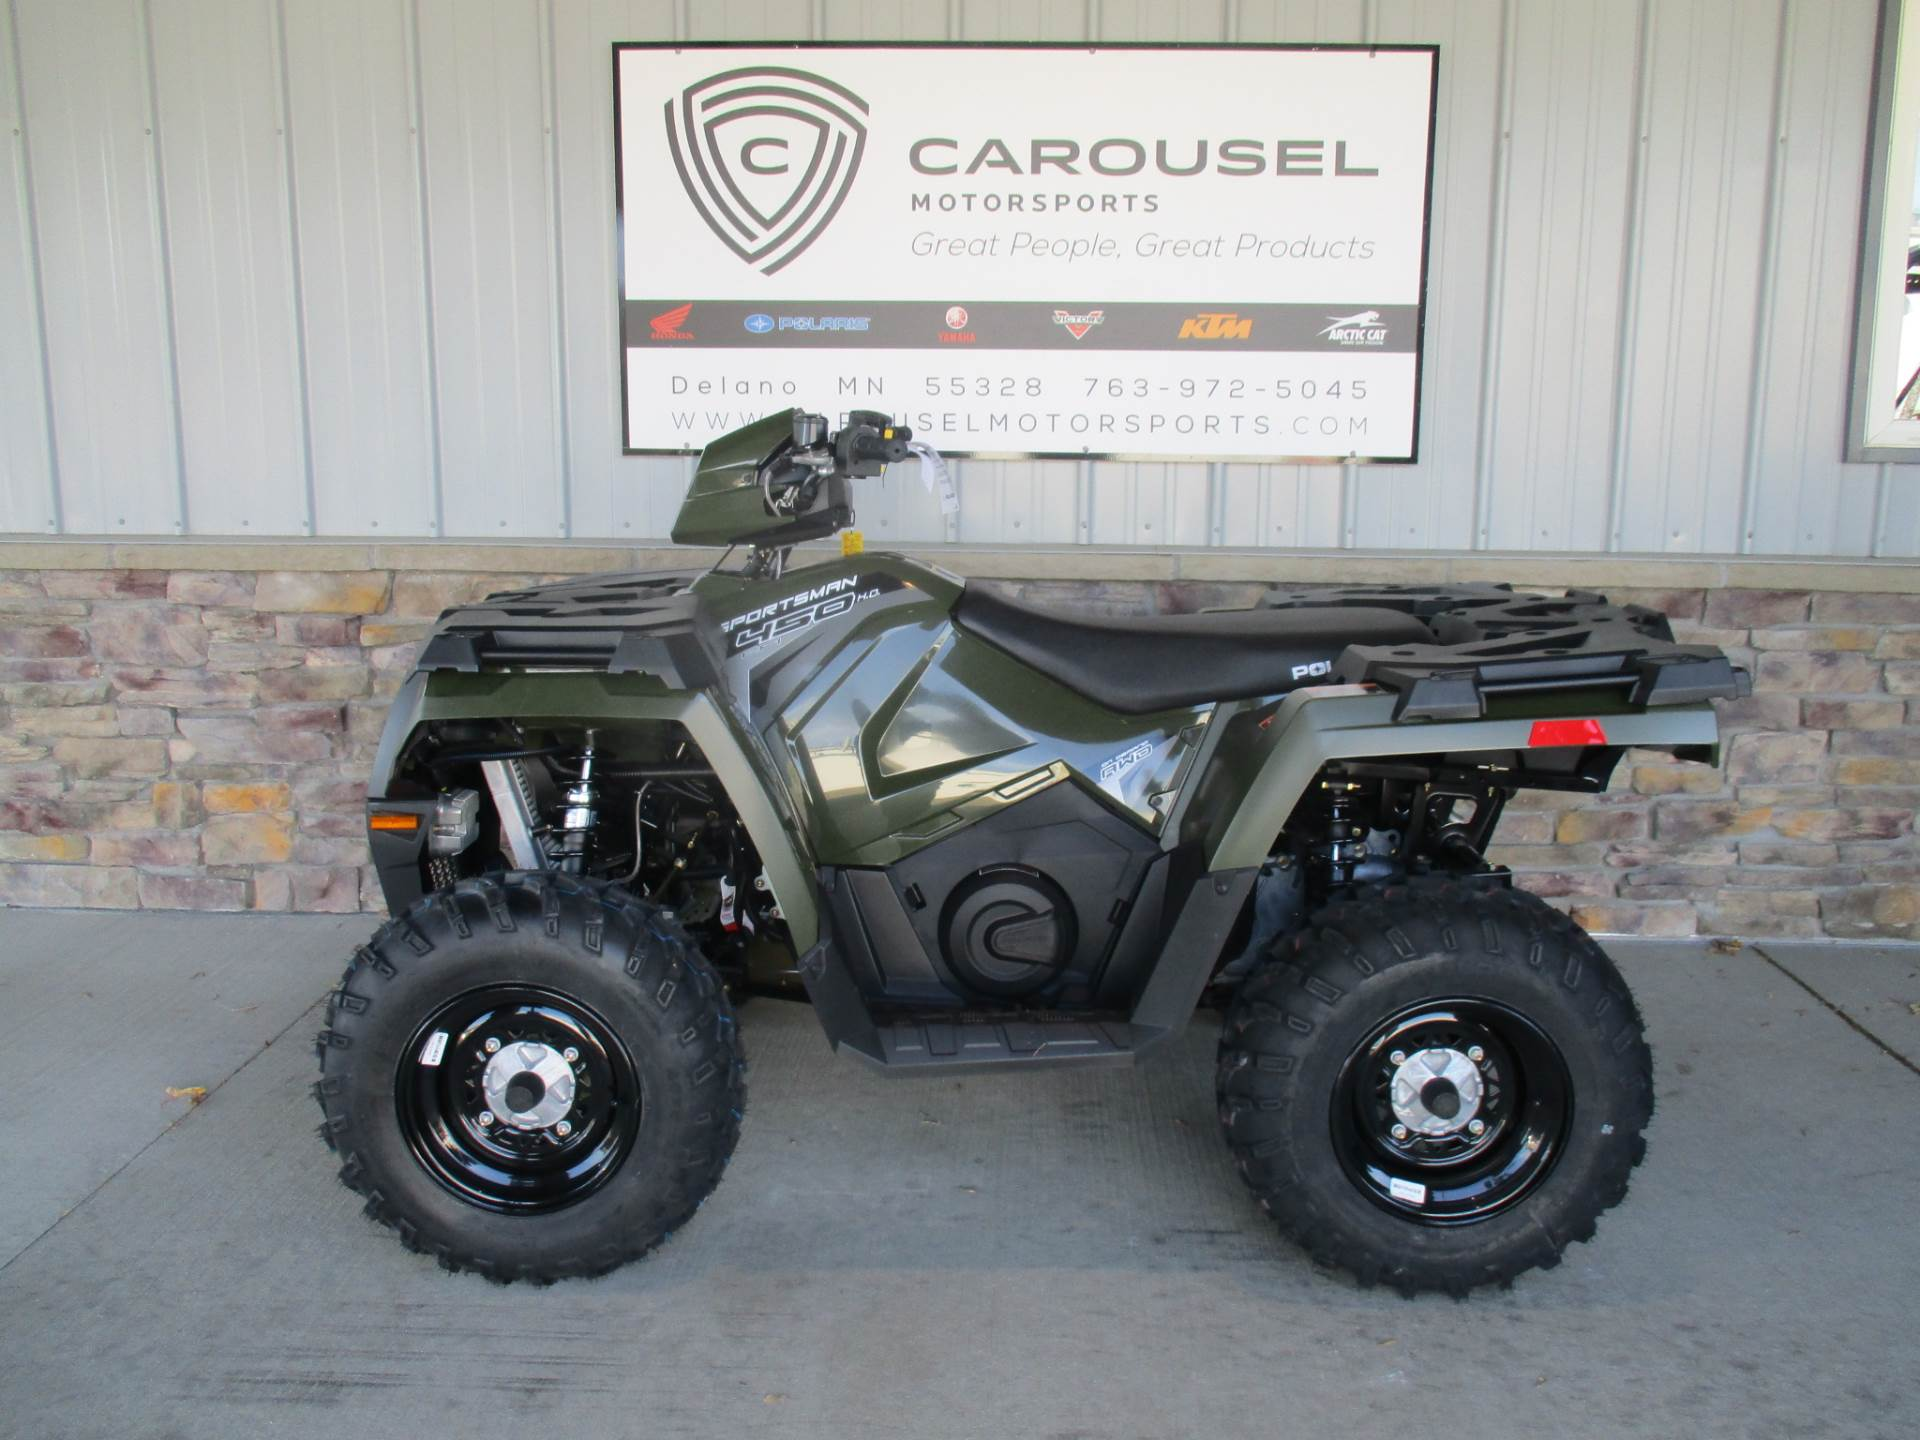 2018 Polaris Sportsman 450 H.O. in Delano, Minnesota